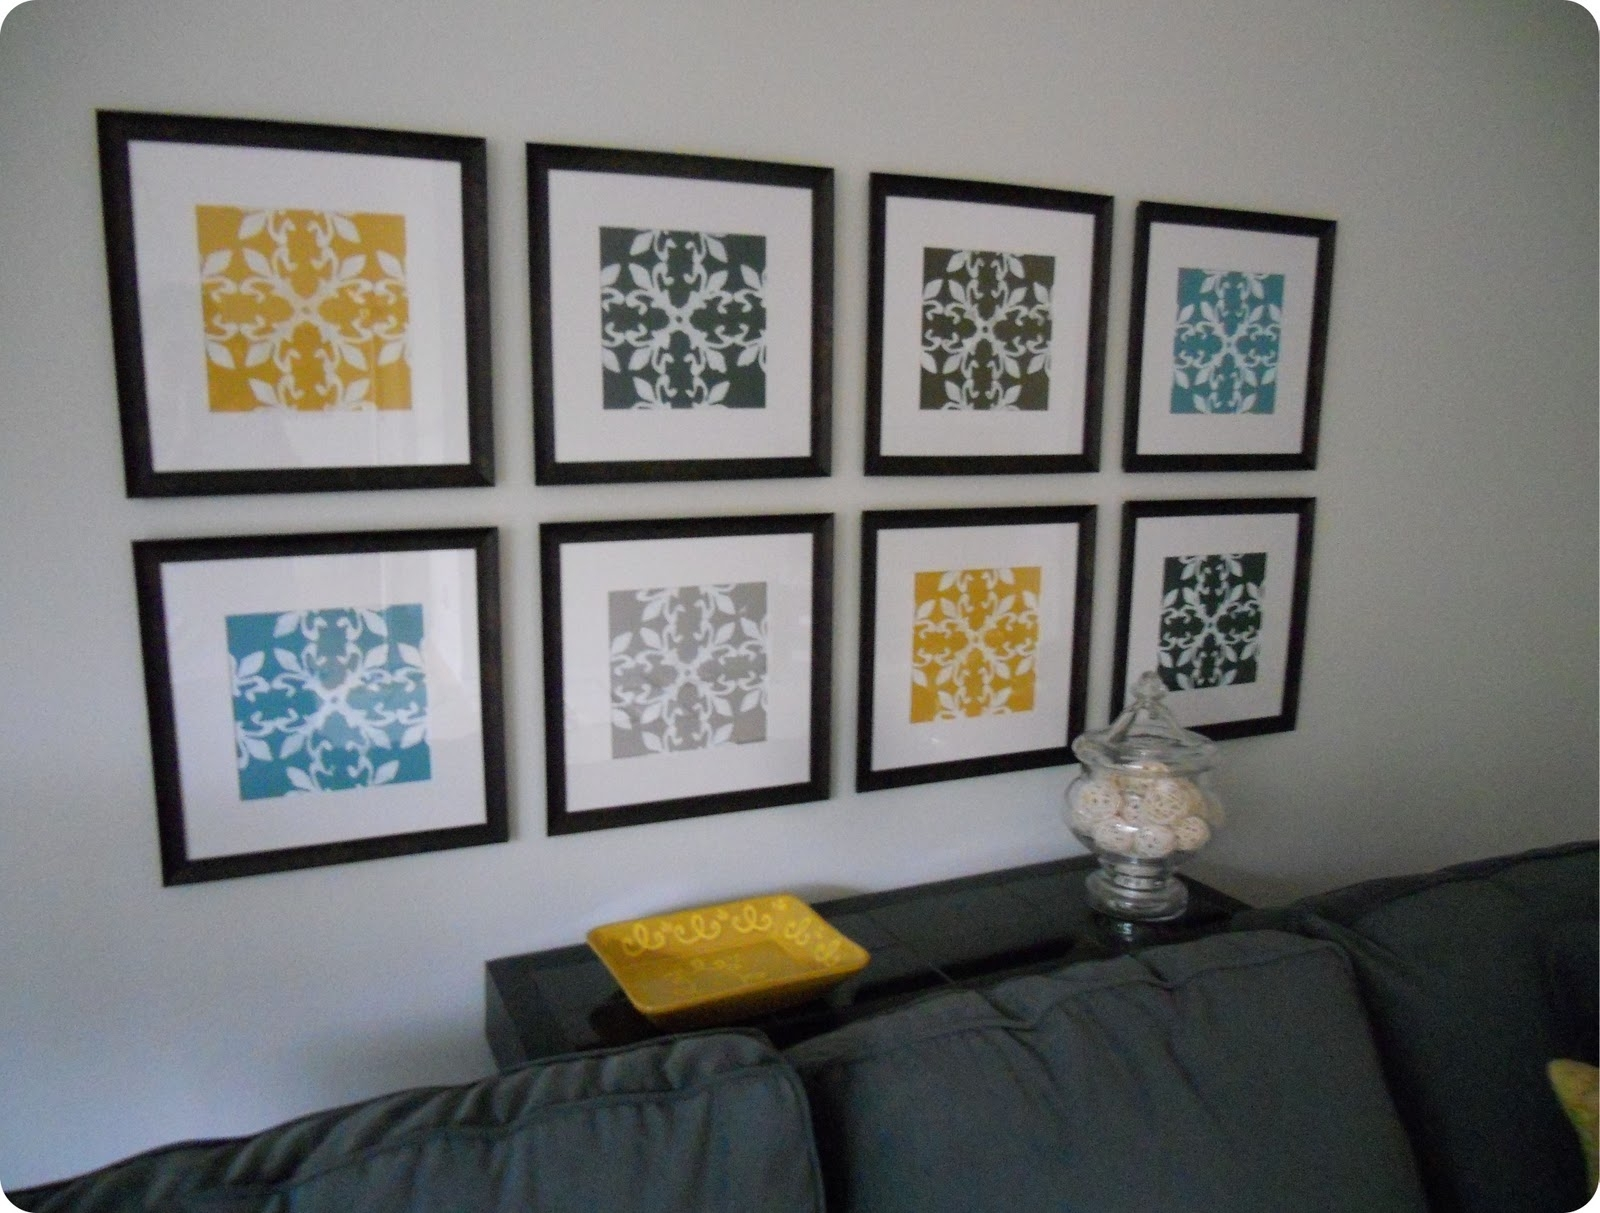 Gallery Wall Made From Inexpensive Frames, Scrapbook Paper Within Recent Fabric Wall Art Frames (View 15 of 15)